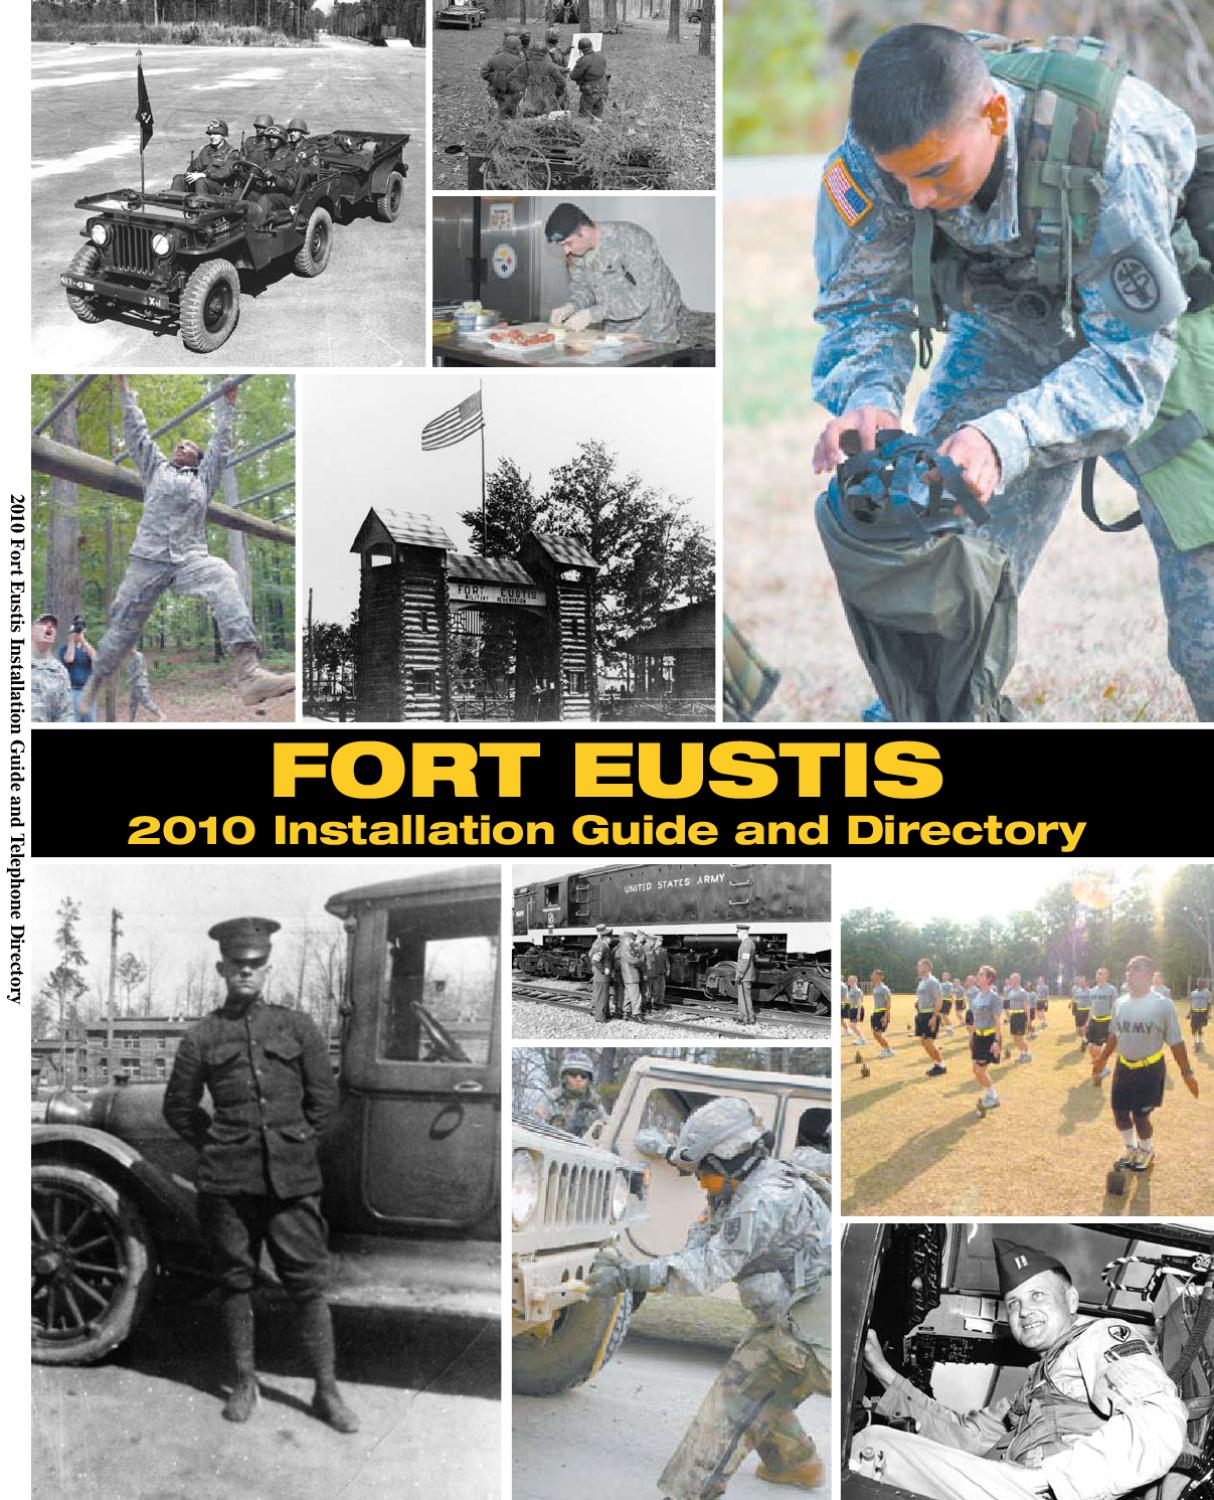 Fort Eustis 2010 Installation Guide and Directory